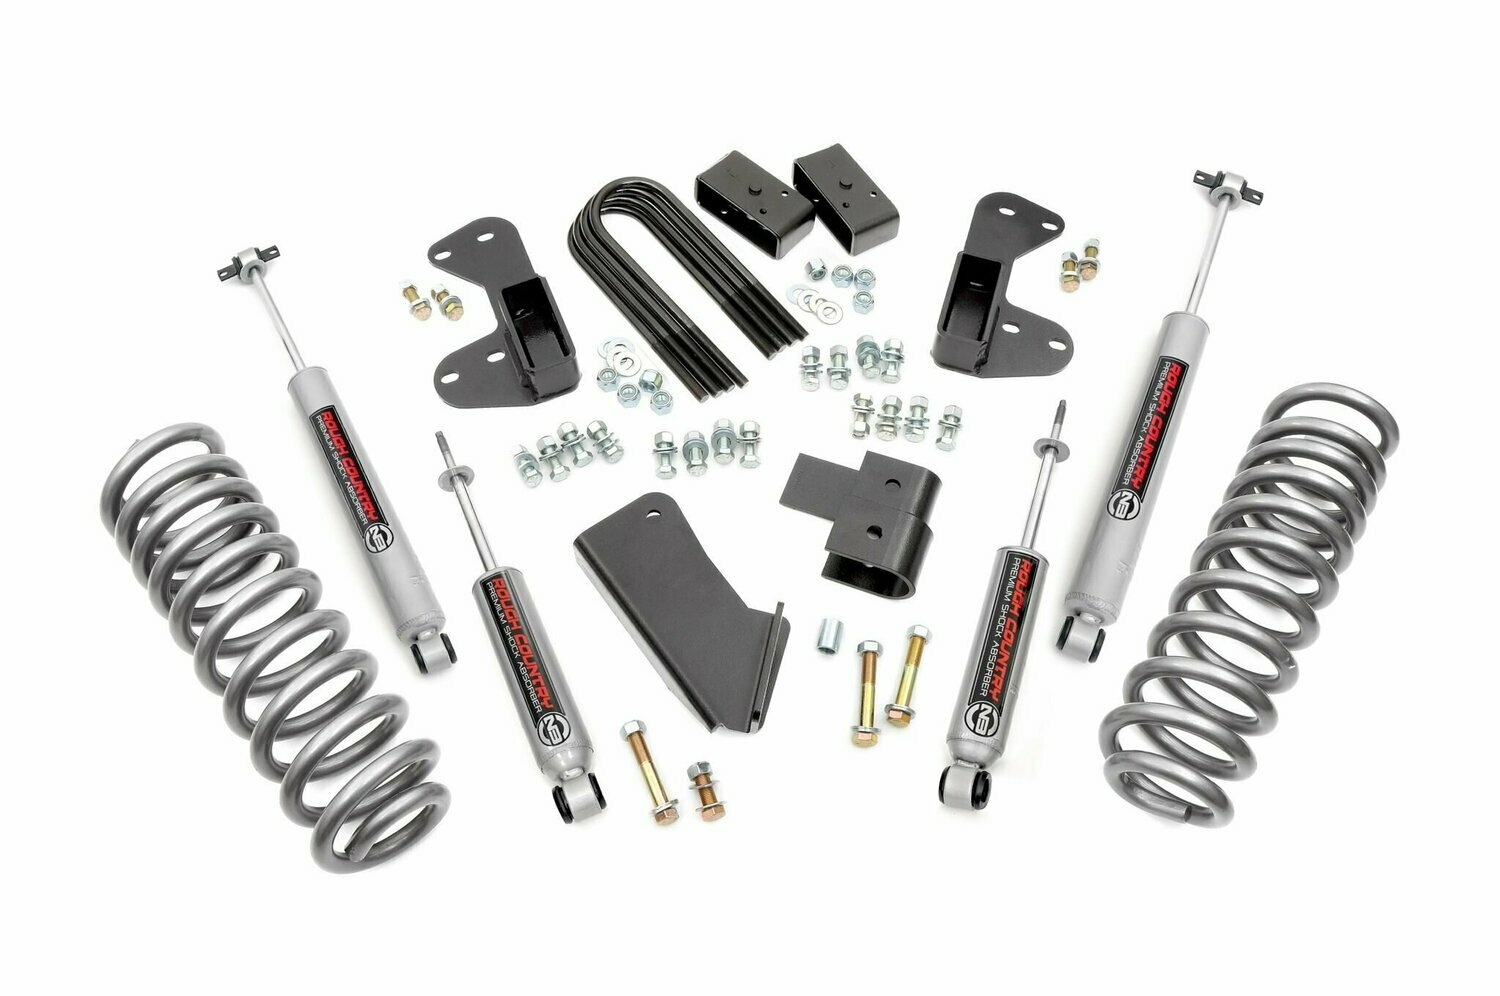 2.5in Ford Suspension Lift Kit (1980-1996 F-150 2WD)